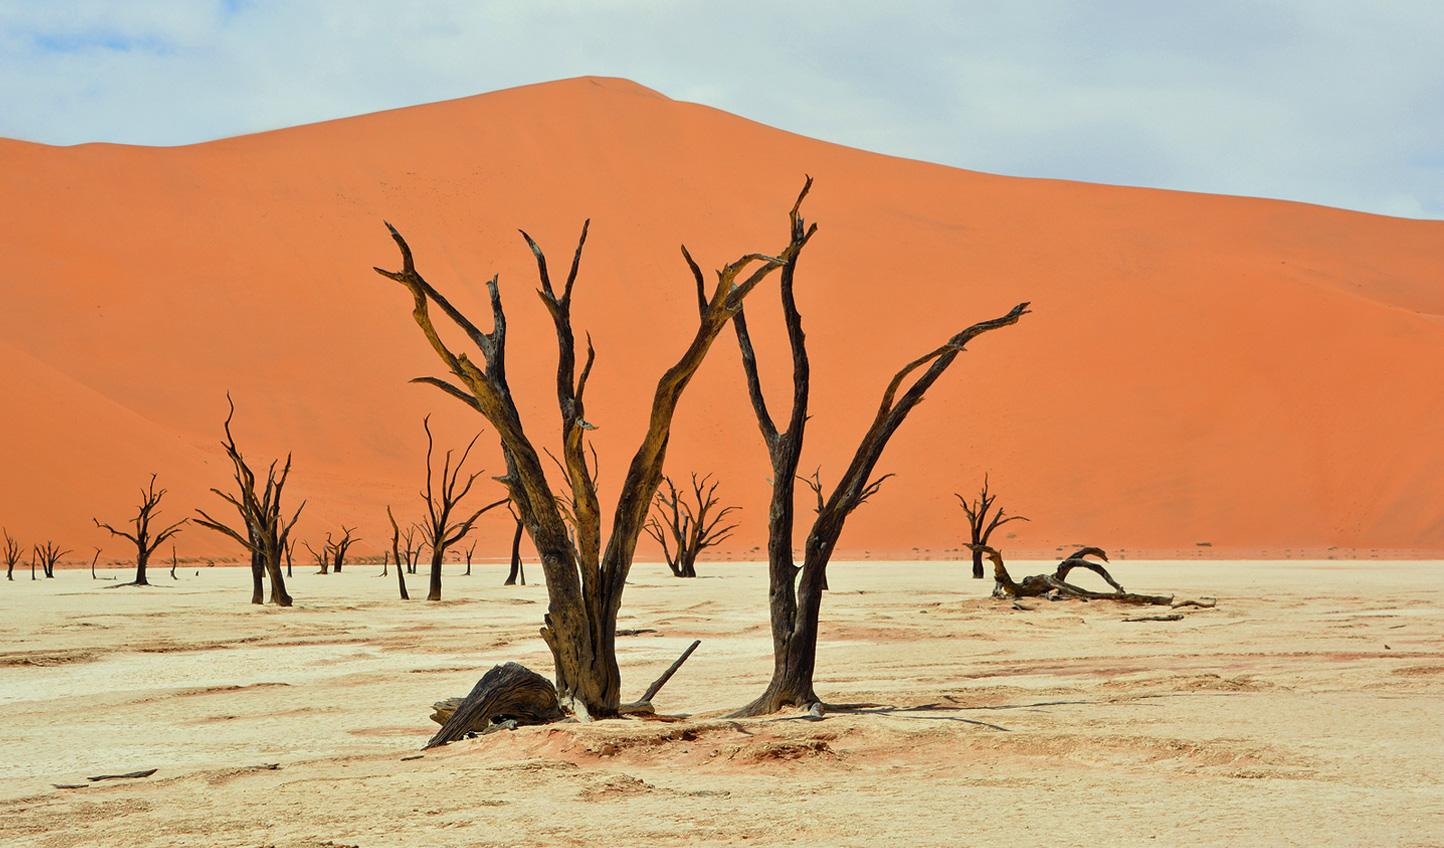 Stoll across the dunes to Deadvlei